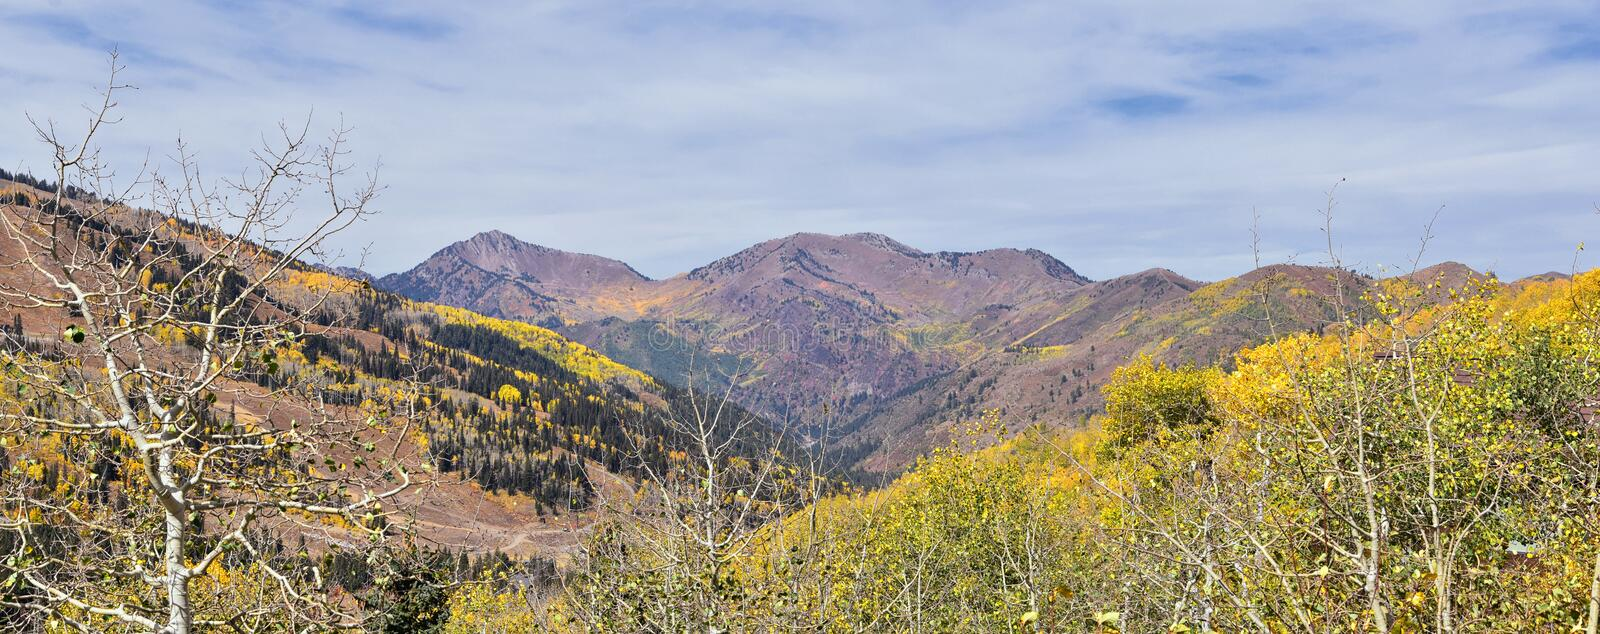 Guardsman Pass views of Panoramic Landscape of the Pass from the Brighton side by Midway and Heber Valley along the Wasatch Front. Rocky Mountains, Fall Leaf stock image